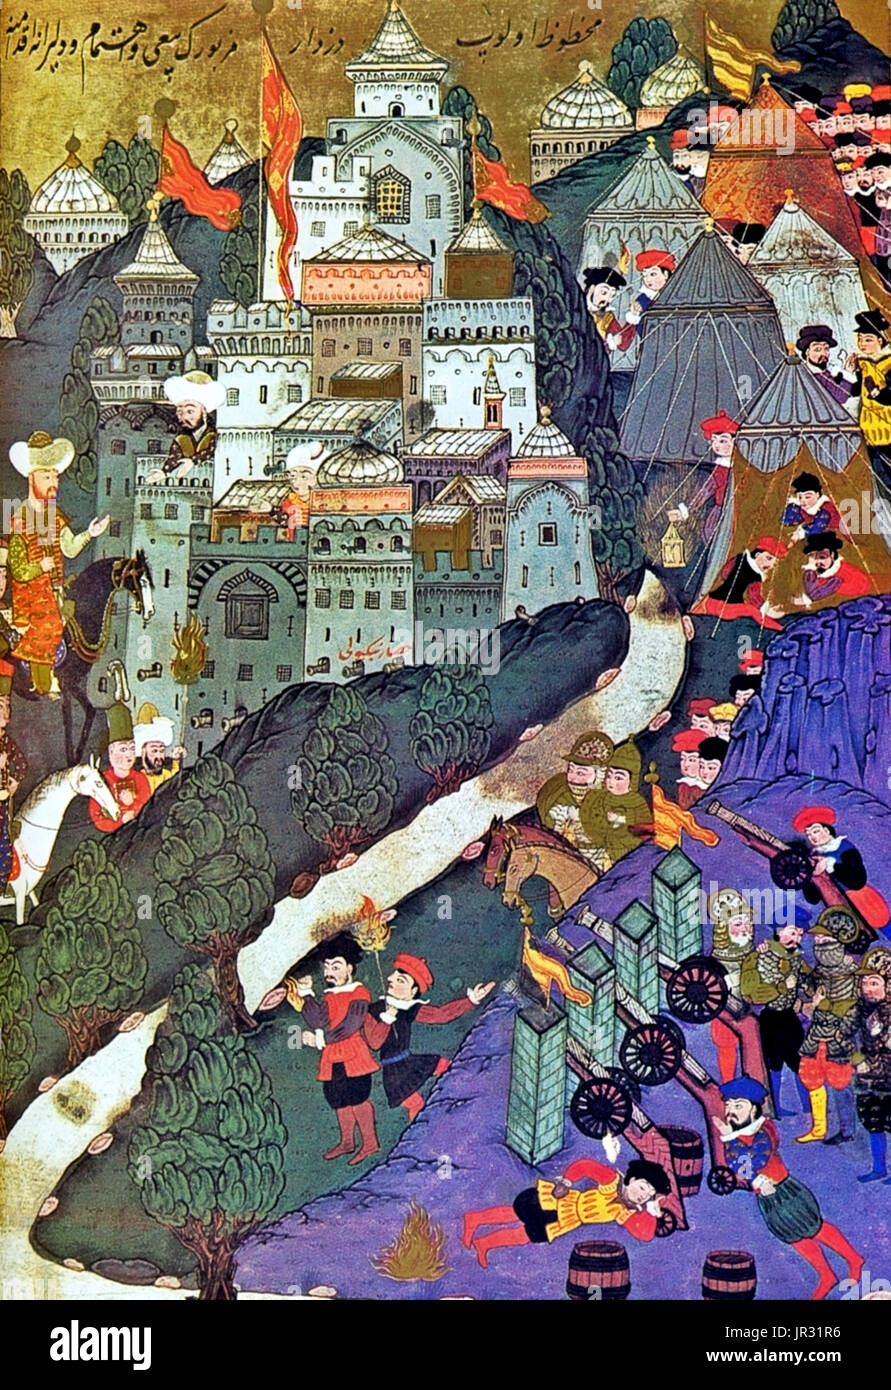 The Battle of Nicopolis took place on September 25, 1396 and resulted in the rout of an allied crusader army of Hungarian, Croatian, Bulgarian, Wallachian, French, English, Burgundian, German and assorted troops (assisted by the Venetian navy) at the hands of an Ottoman force, raising of the siege of the Danubian fortress of Nicopolis. It is often referred to as the Crusade of Nicopolis as it was one of the last large-scale Crusades of the Middle Ages. The Battle of Nicopolis is also widely regarded as the end of the Second Bulgarian Empire, since hopes for its revival had come to an end with  - Stock Image